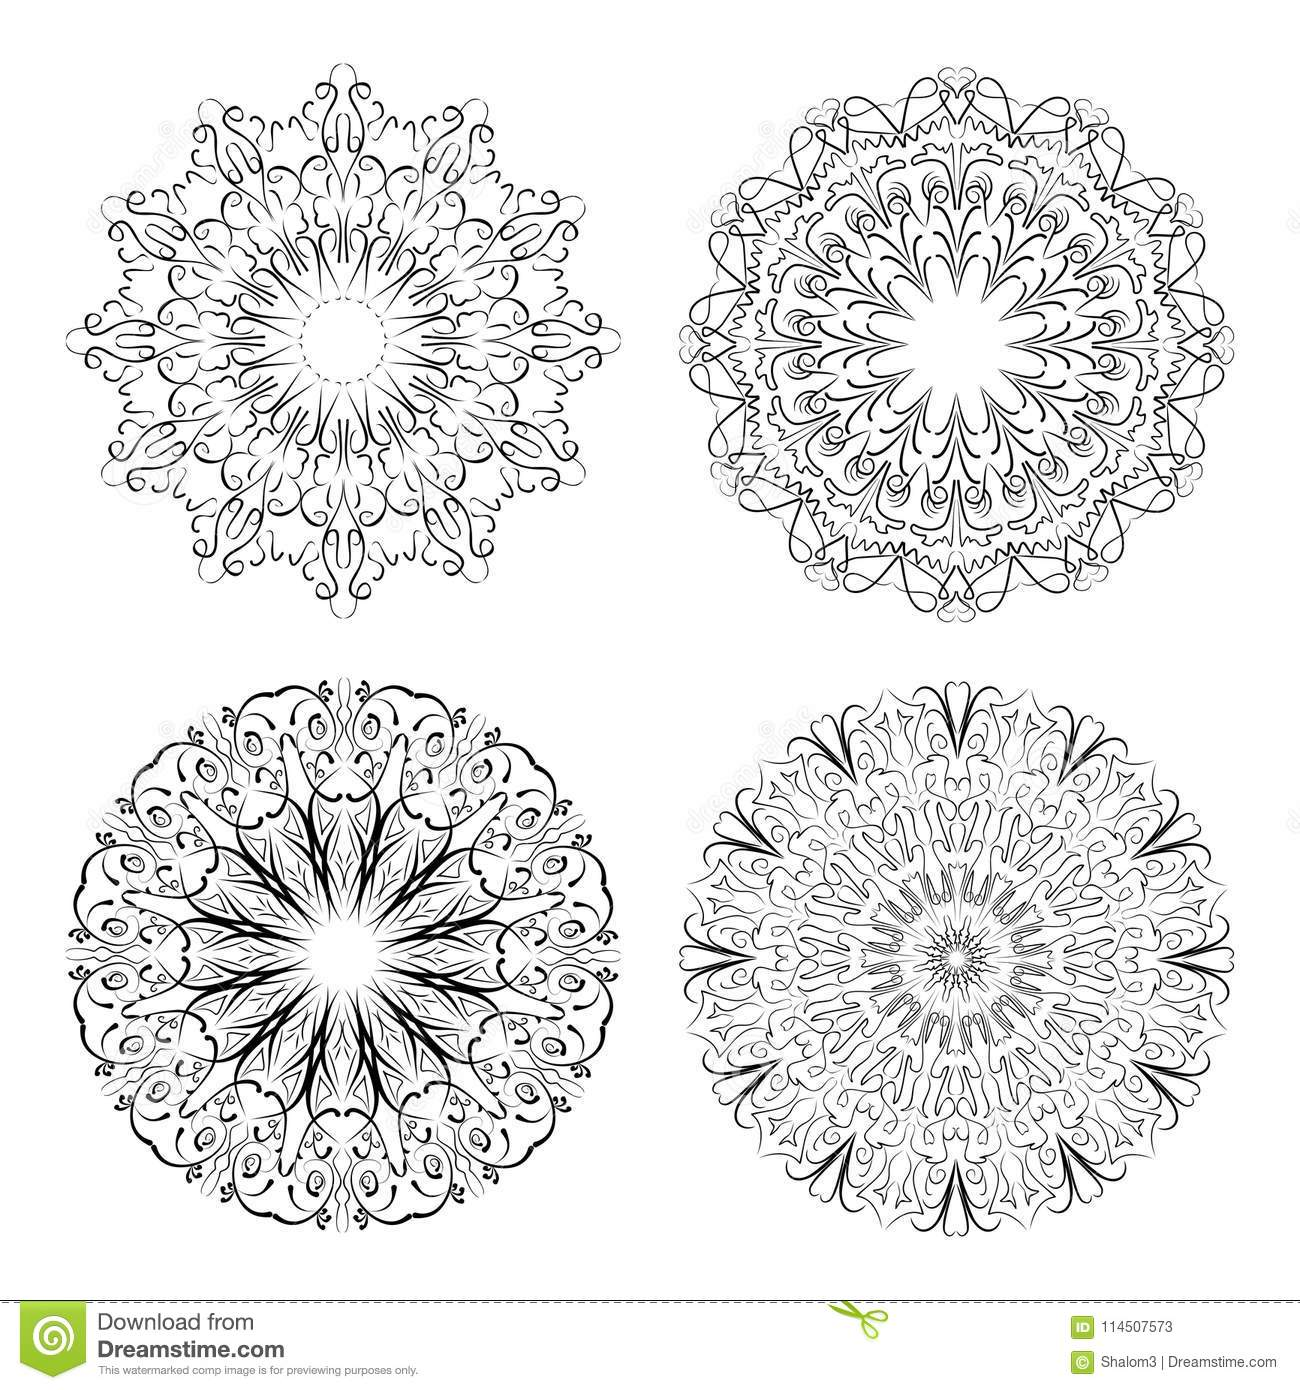 Calligraphic Circle Lace Patterns In Monochrome Design. Embroidery ...